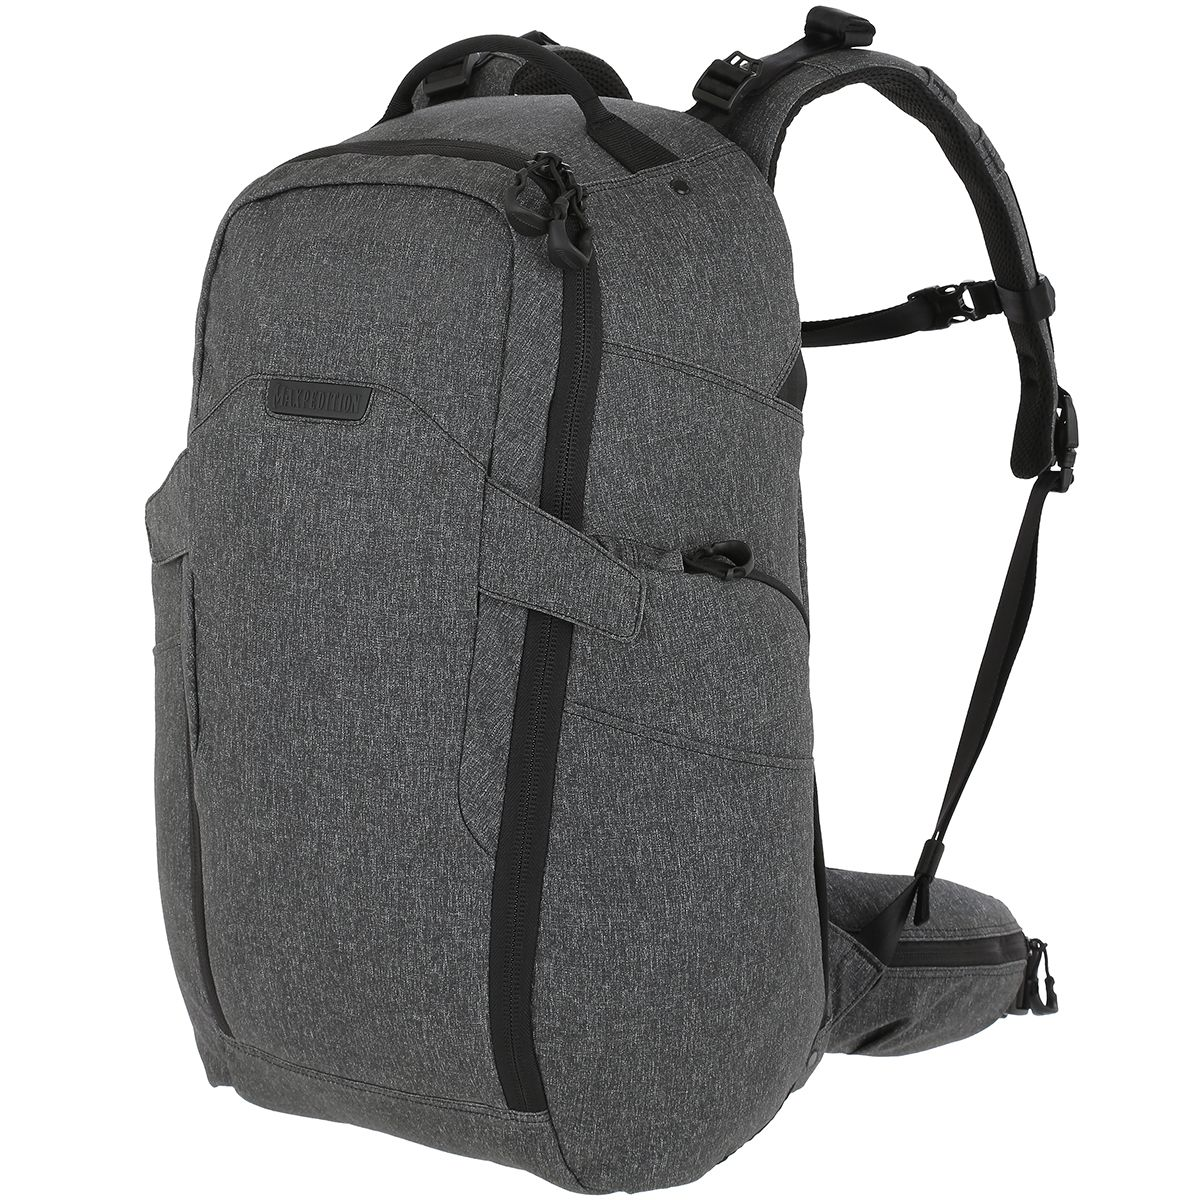 Maxpedition NTTPK35CH Entity 35 CCW-Enabled Internal Frame Backpack 35L, Charcoal